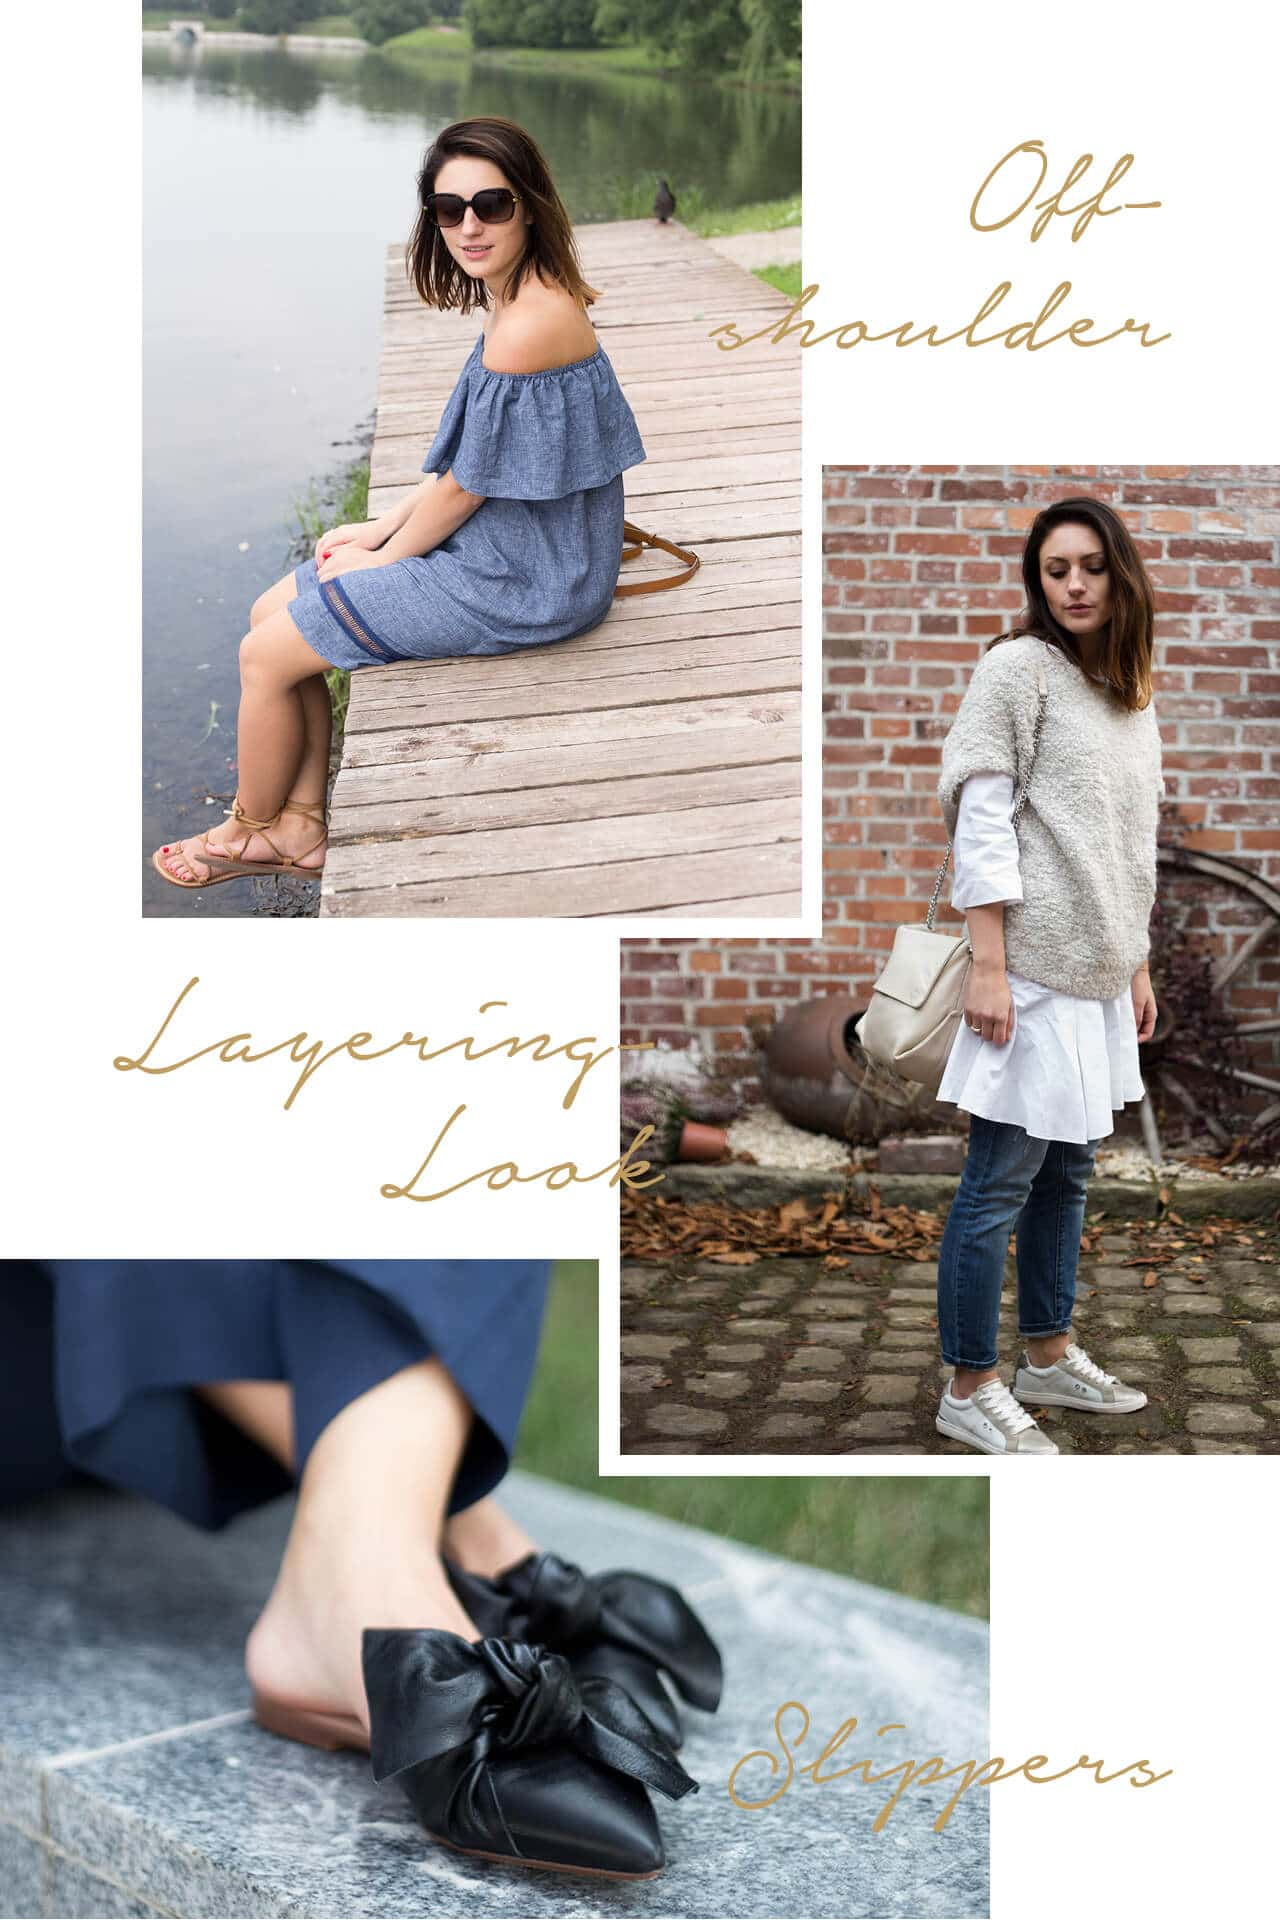 Fashion-Trend 2017 Offshoulder Layering-Look Slippers Zara